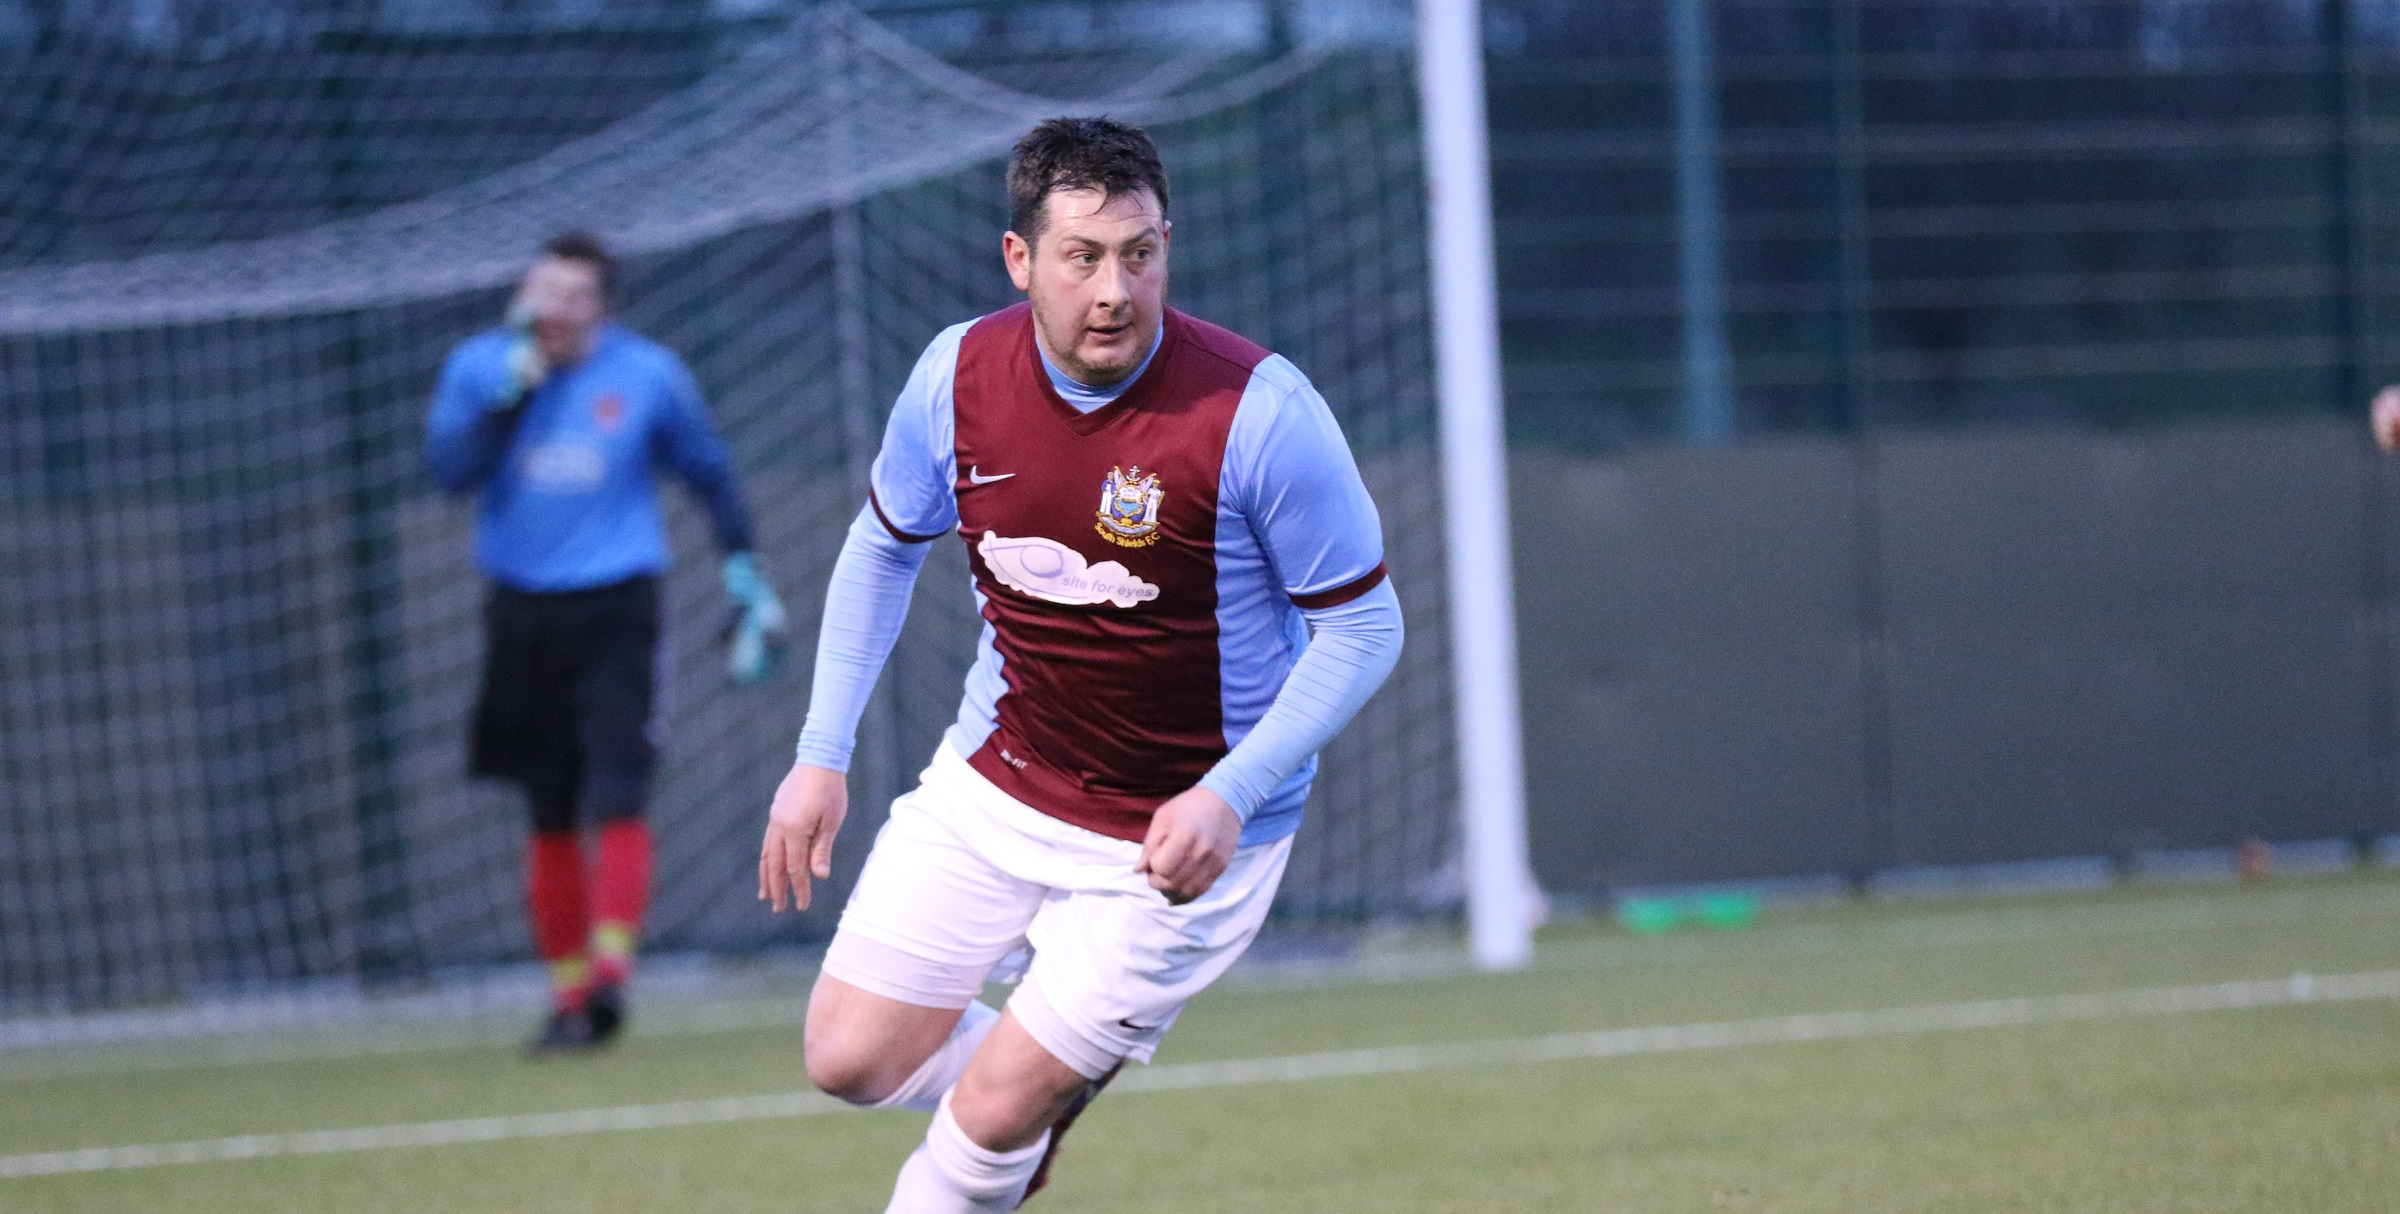 VIDEO: Warren Byrne delighted with return to action – and superb goal